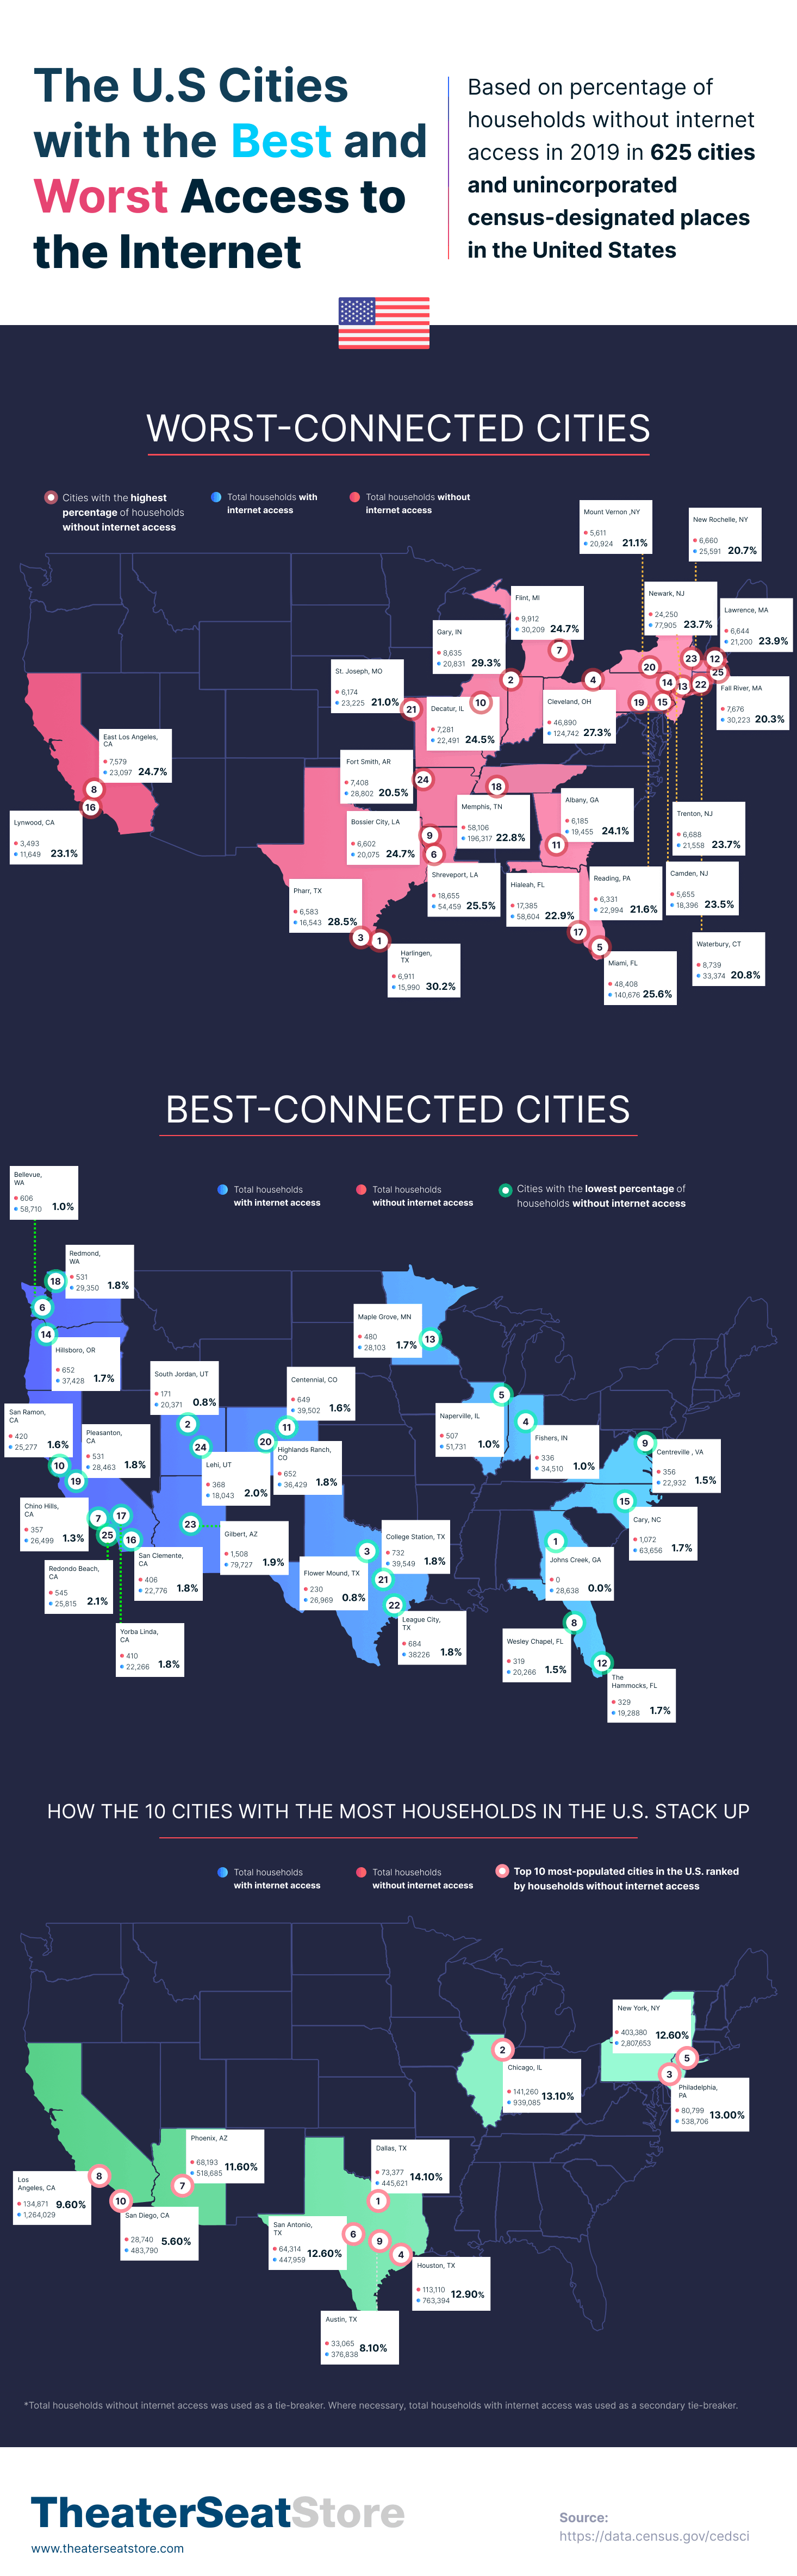 Which Cities Have the Best and Worst Access to the Internet